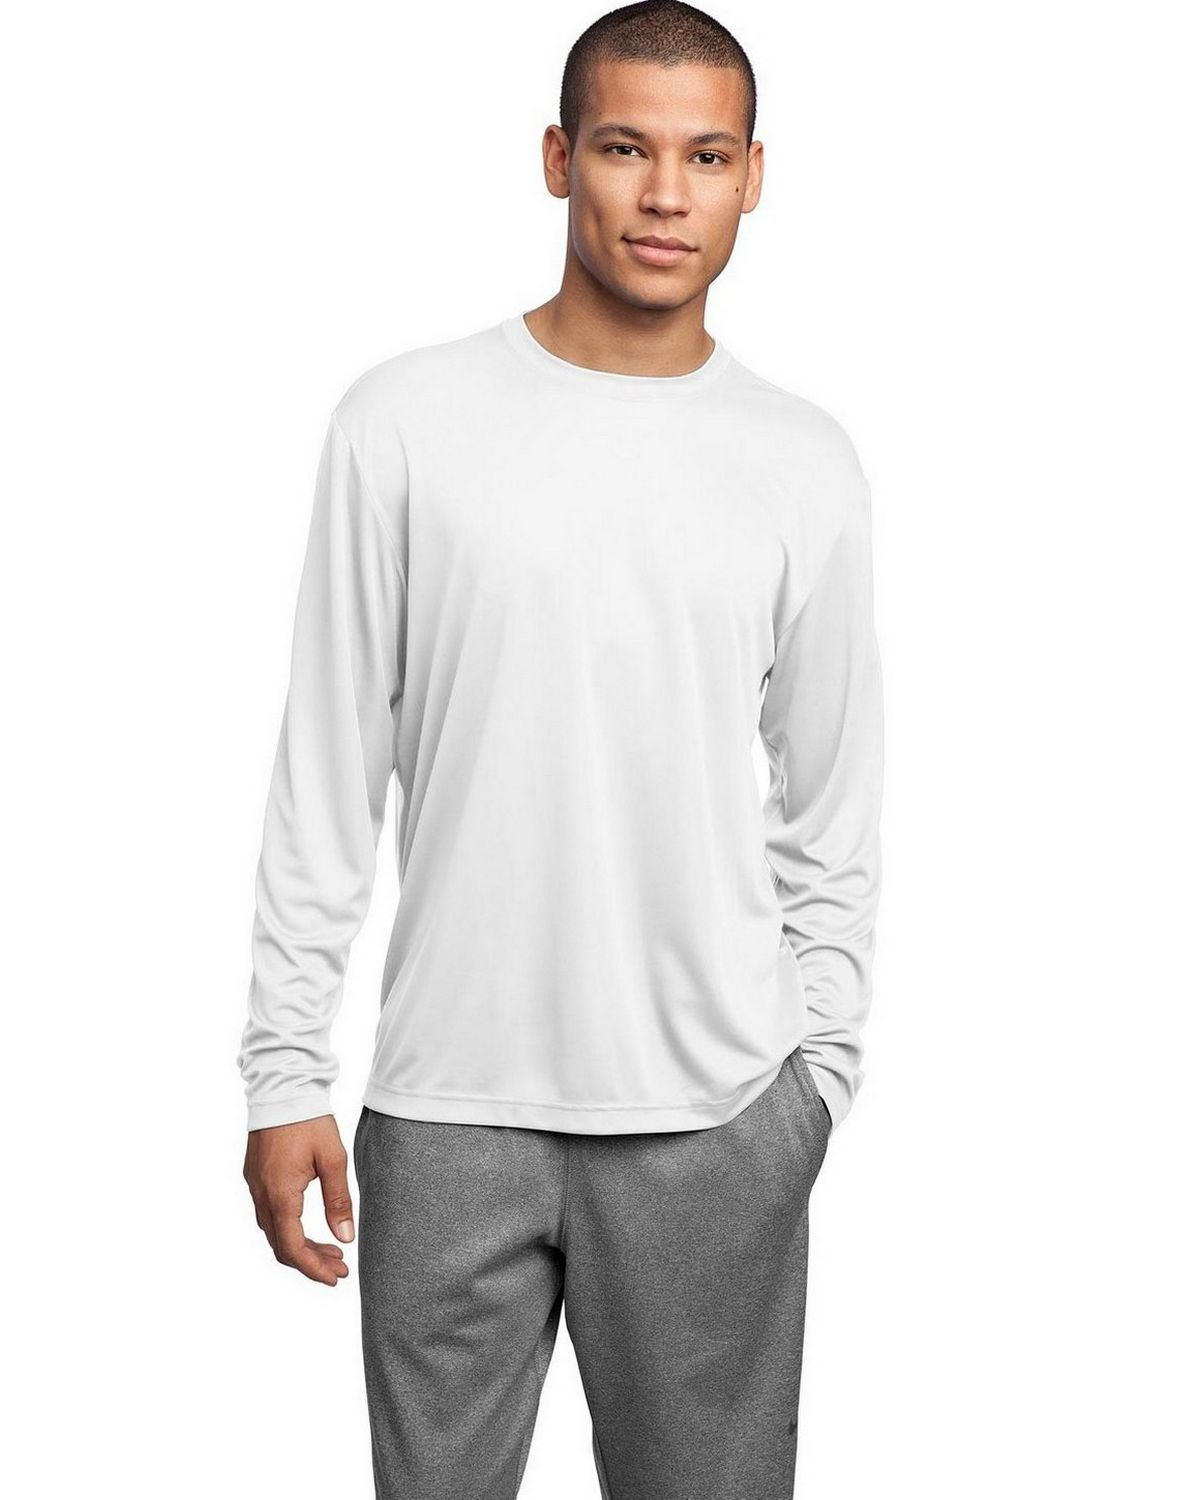 Sport Tek St350ls Long Sleeve Competitor Tee Poshmark makes shopping fun, affordable & easy! sport tek st350ls men s long sleeve competitor tee